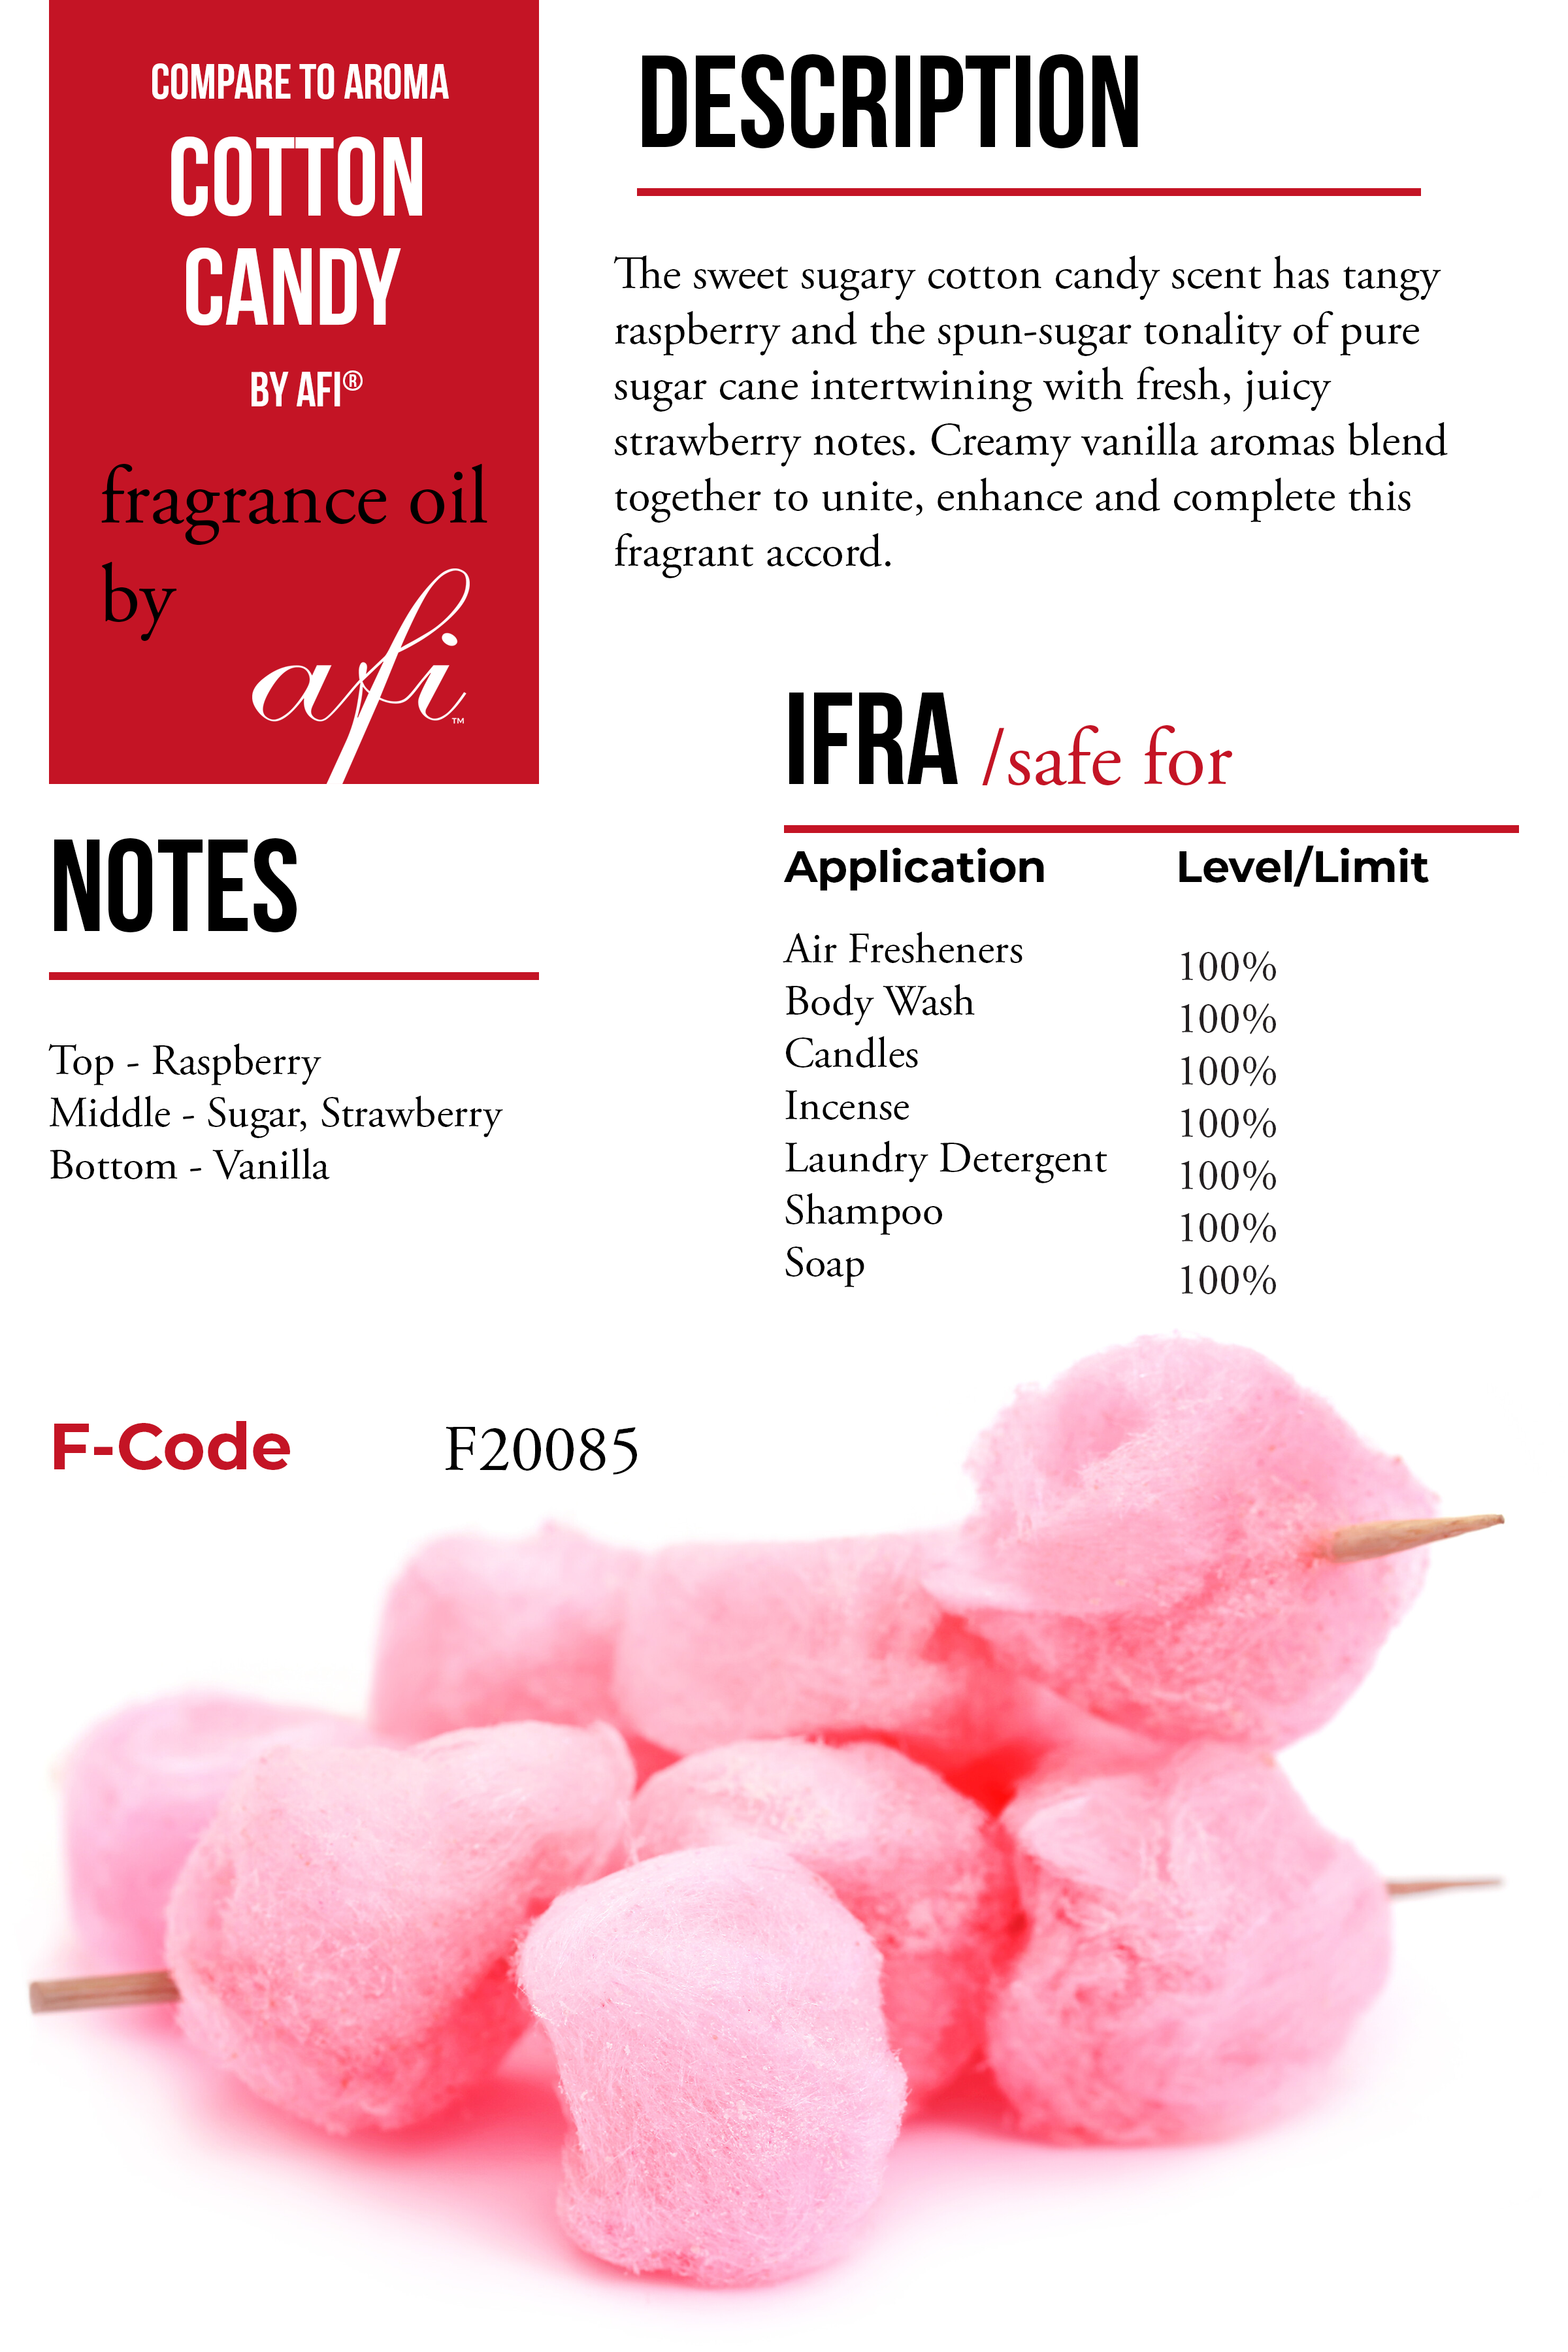 Cotton Candy By Afi F 20085 In 2020 Aroma Blend Fragrance Aromas